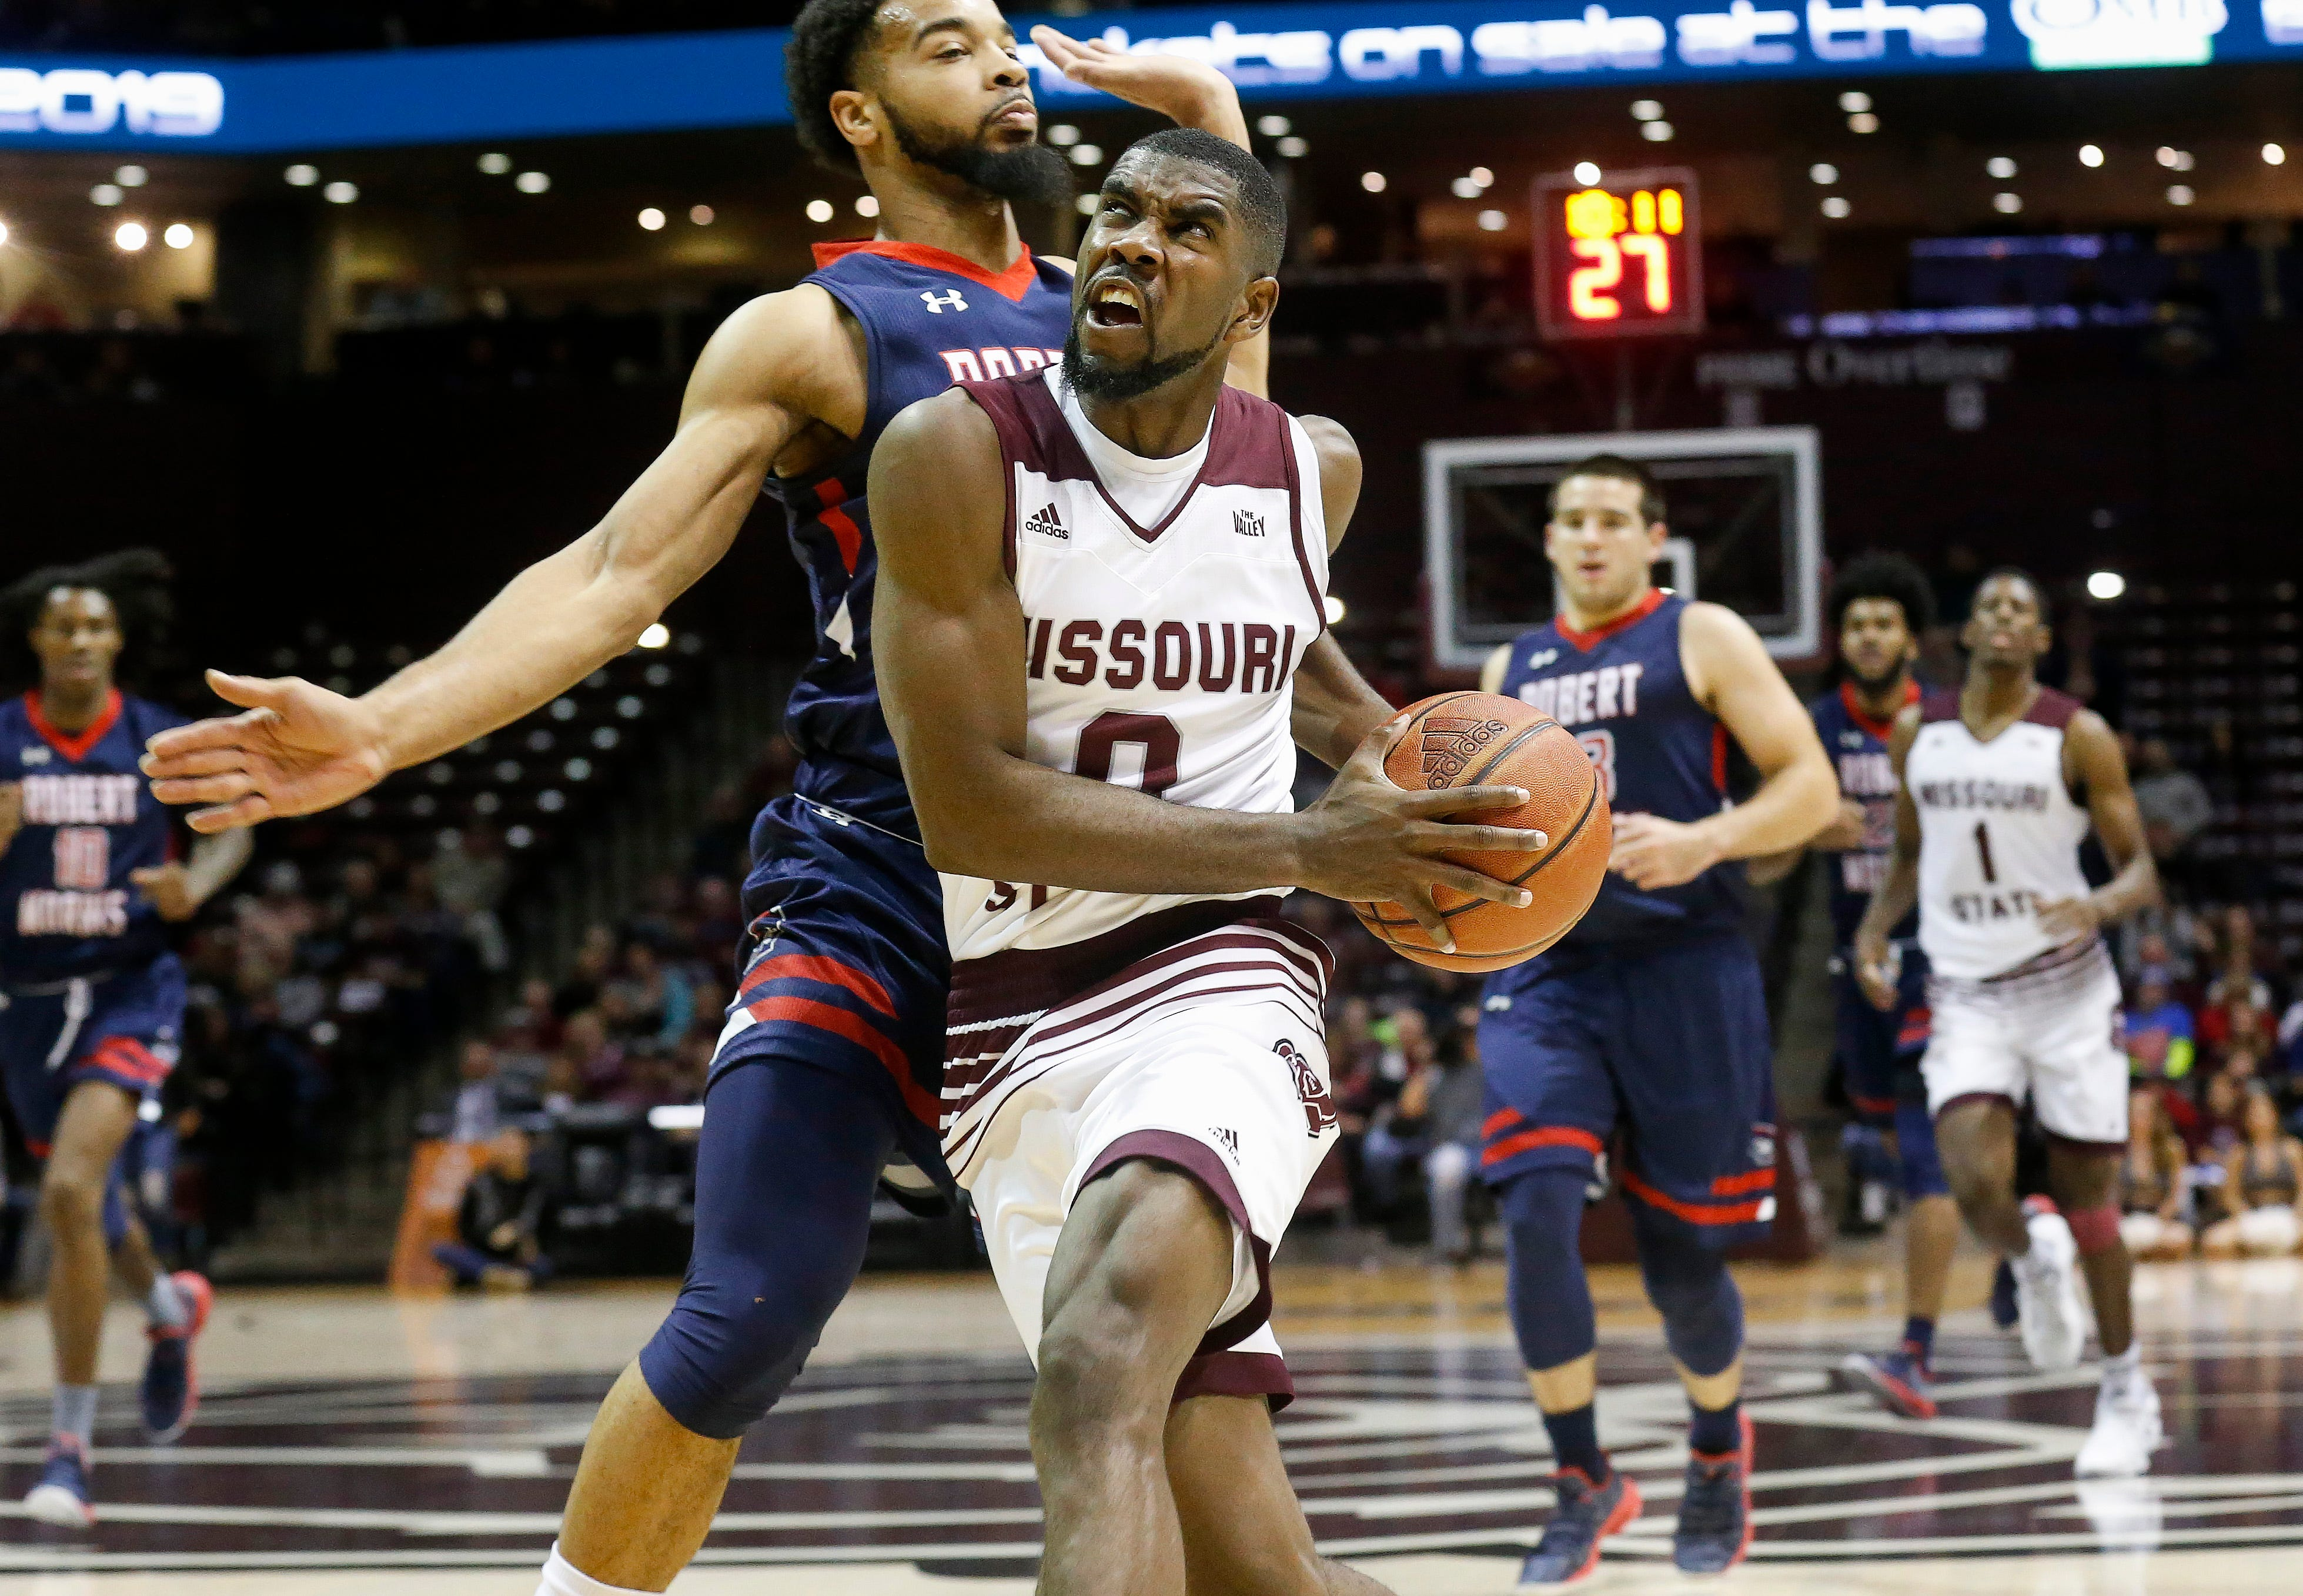 Josh Webster, of Missouri State University, drives to the net during the Bears game against Robert Morris at JQH Arena on Friday, Nov. 9, 2018.